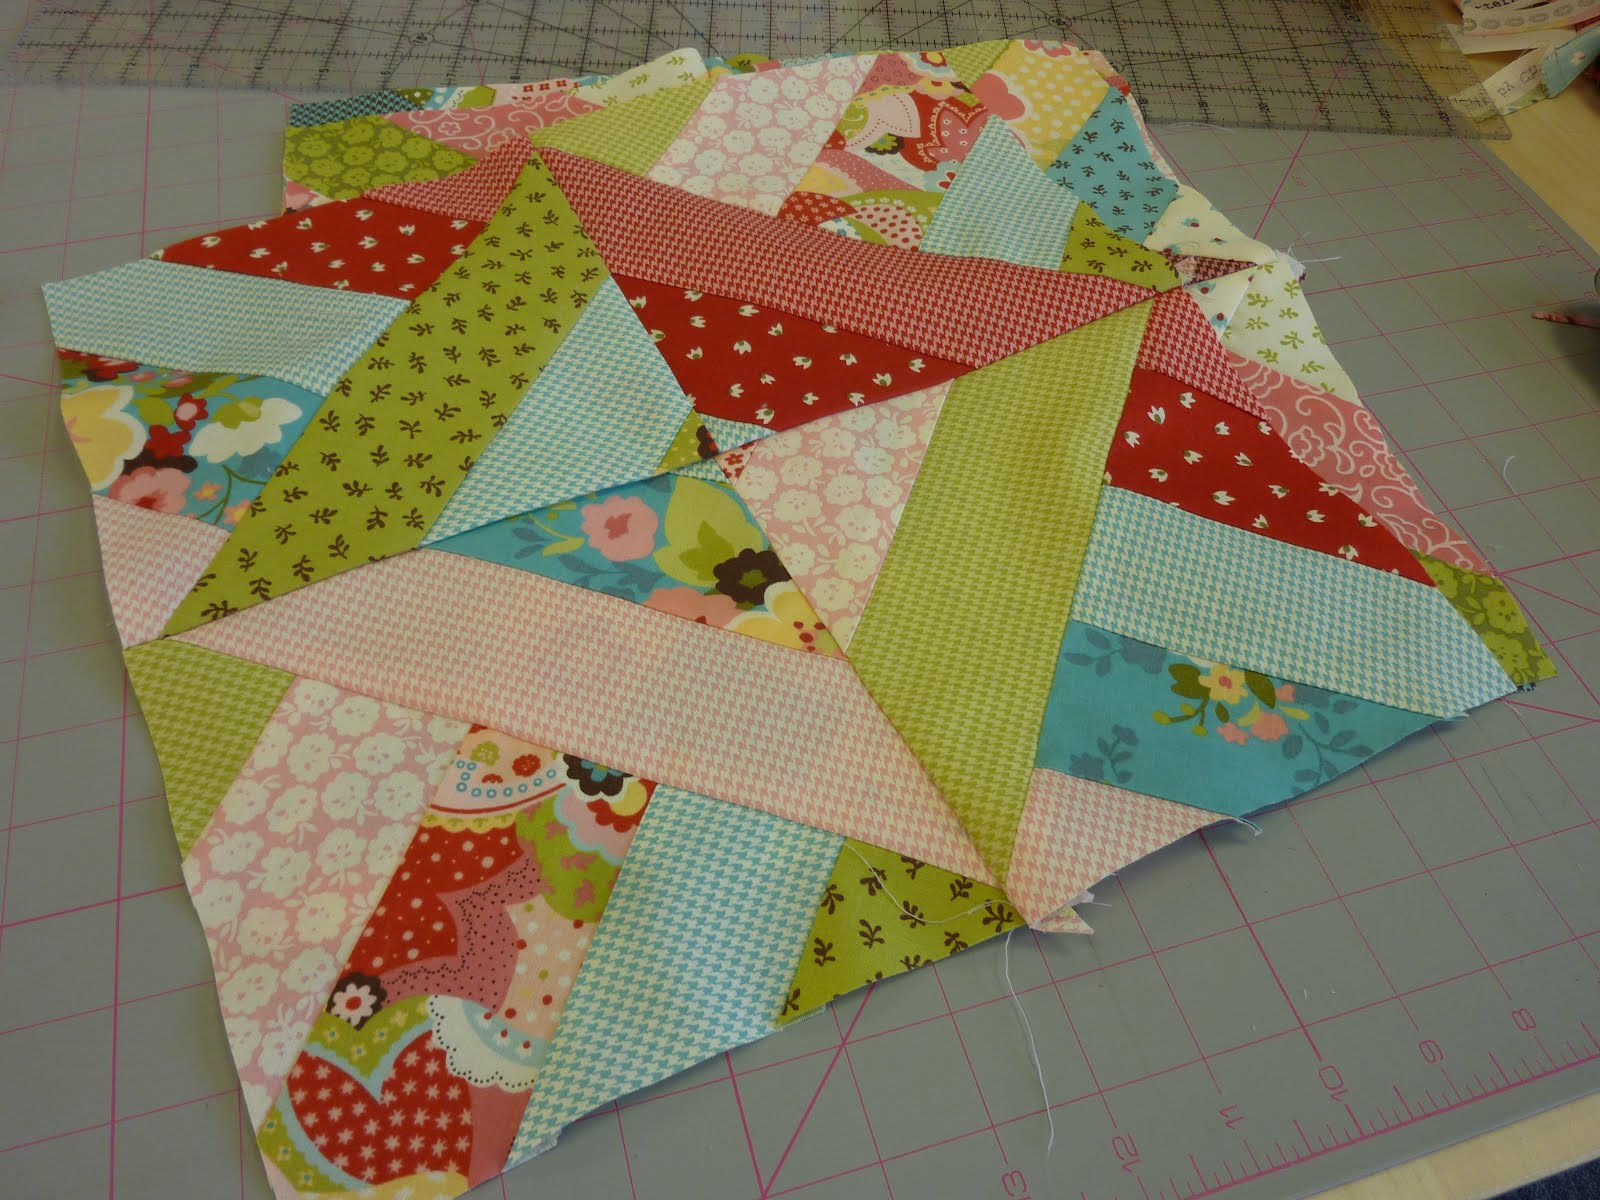 Sew Janome Munkee Creations Patchwork Amp Quilting In